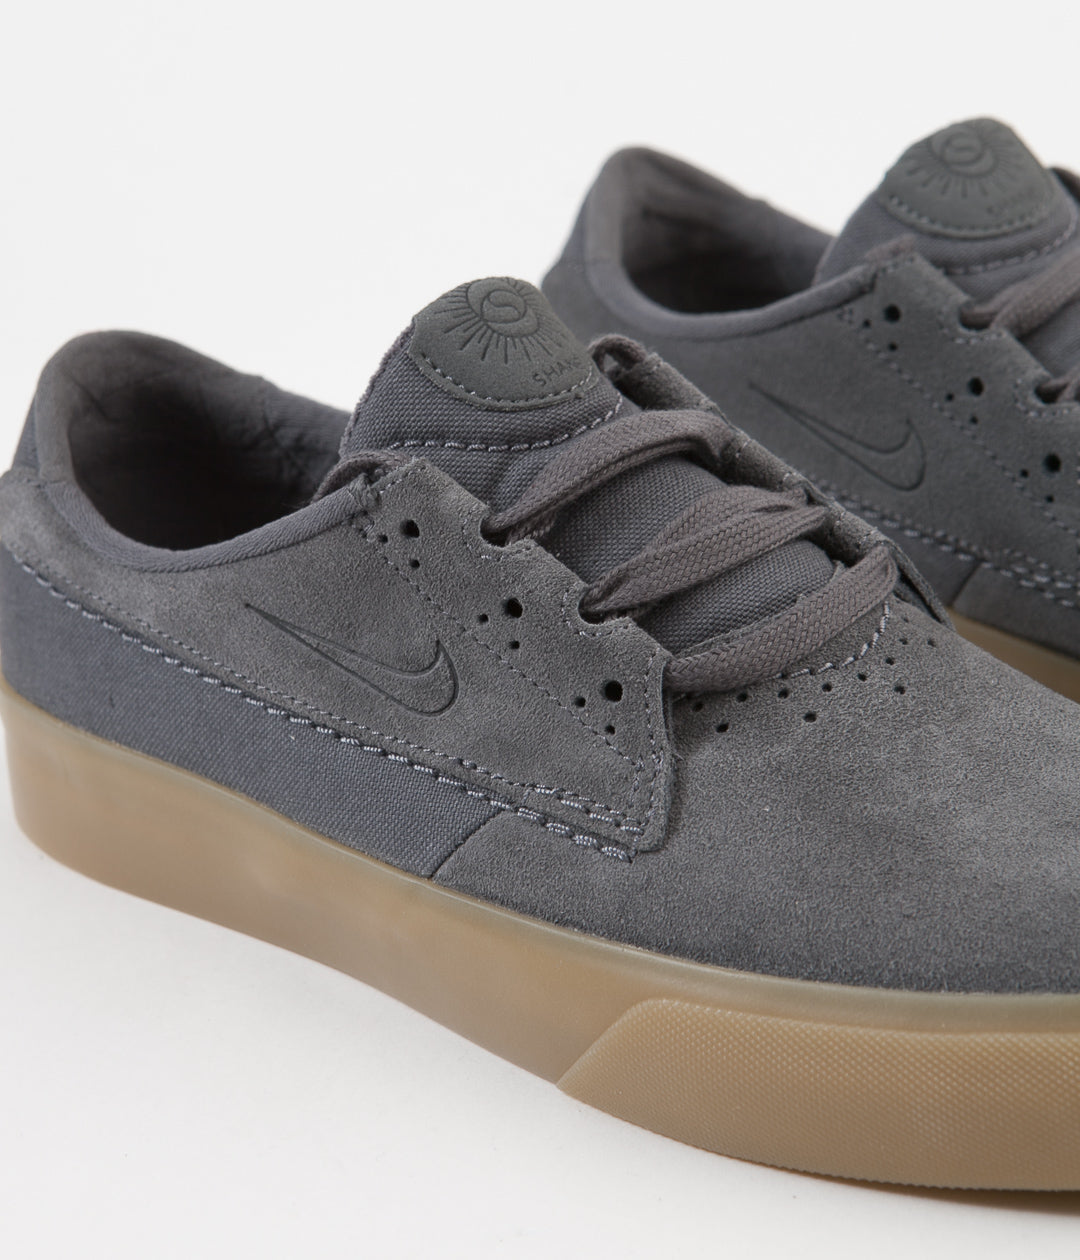 Nike SB Shane Shoes - Dark Grey / Black - Dark Grey